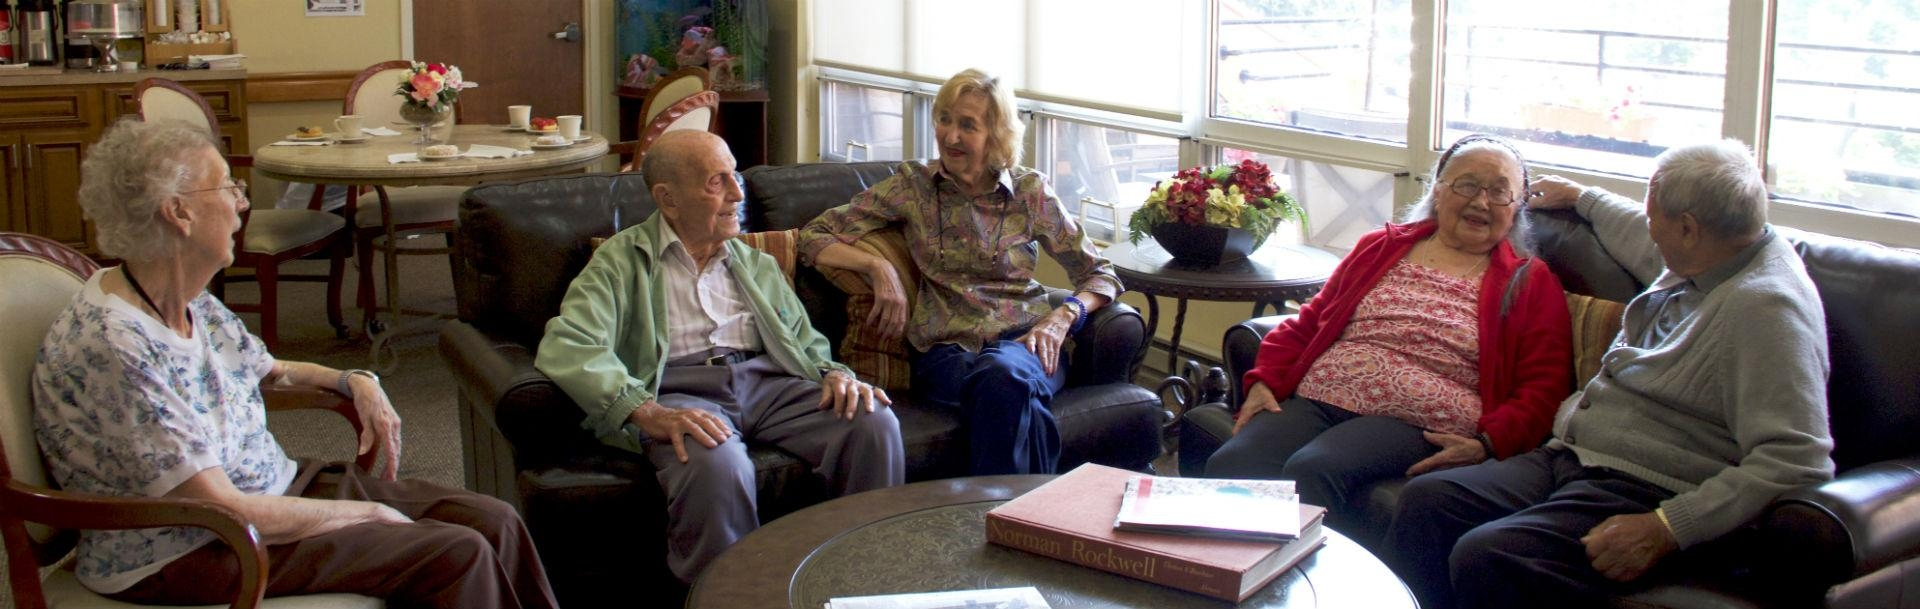 Residents socializing in the lounge